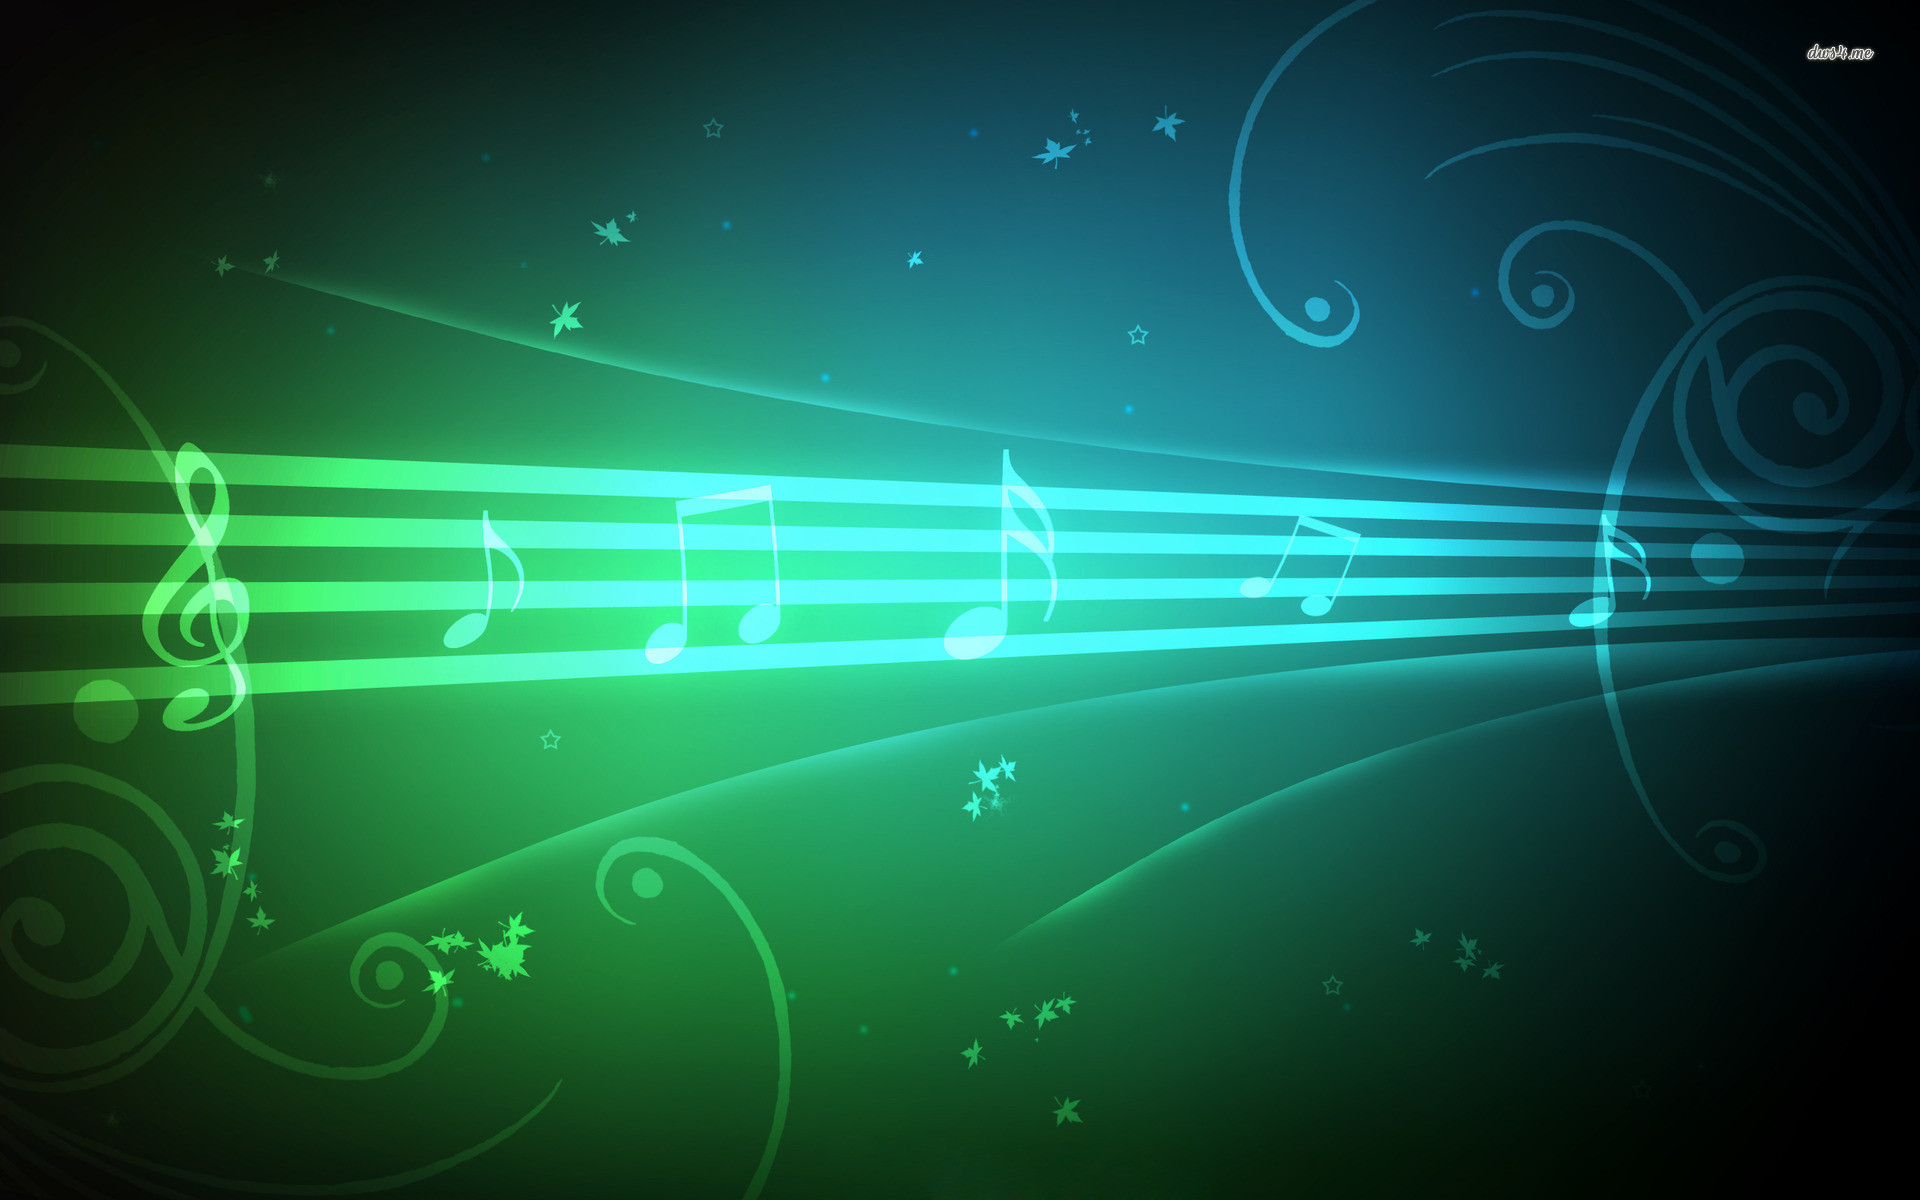 Rainbow Music Notes Background Hd Wallpaper Background Images: Musical Background Images ·①